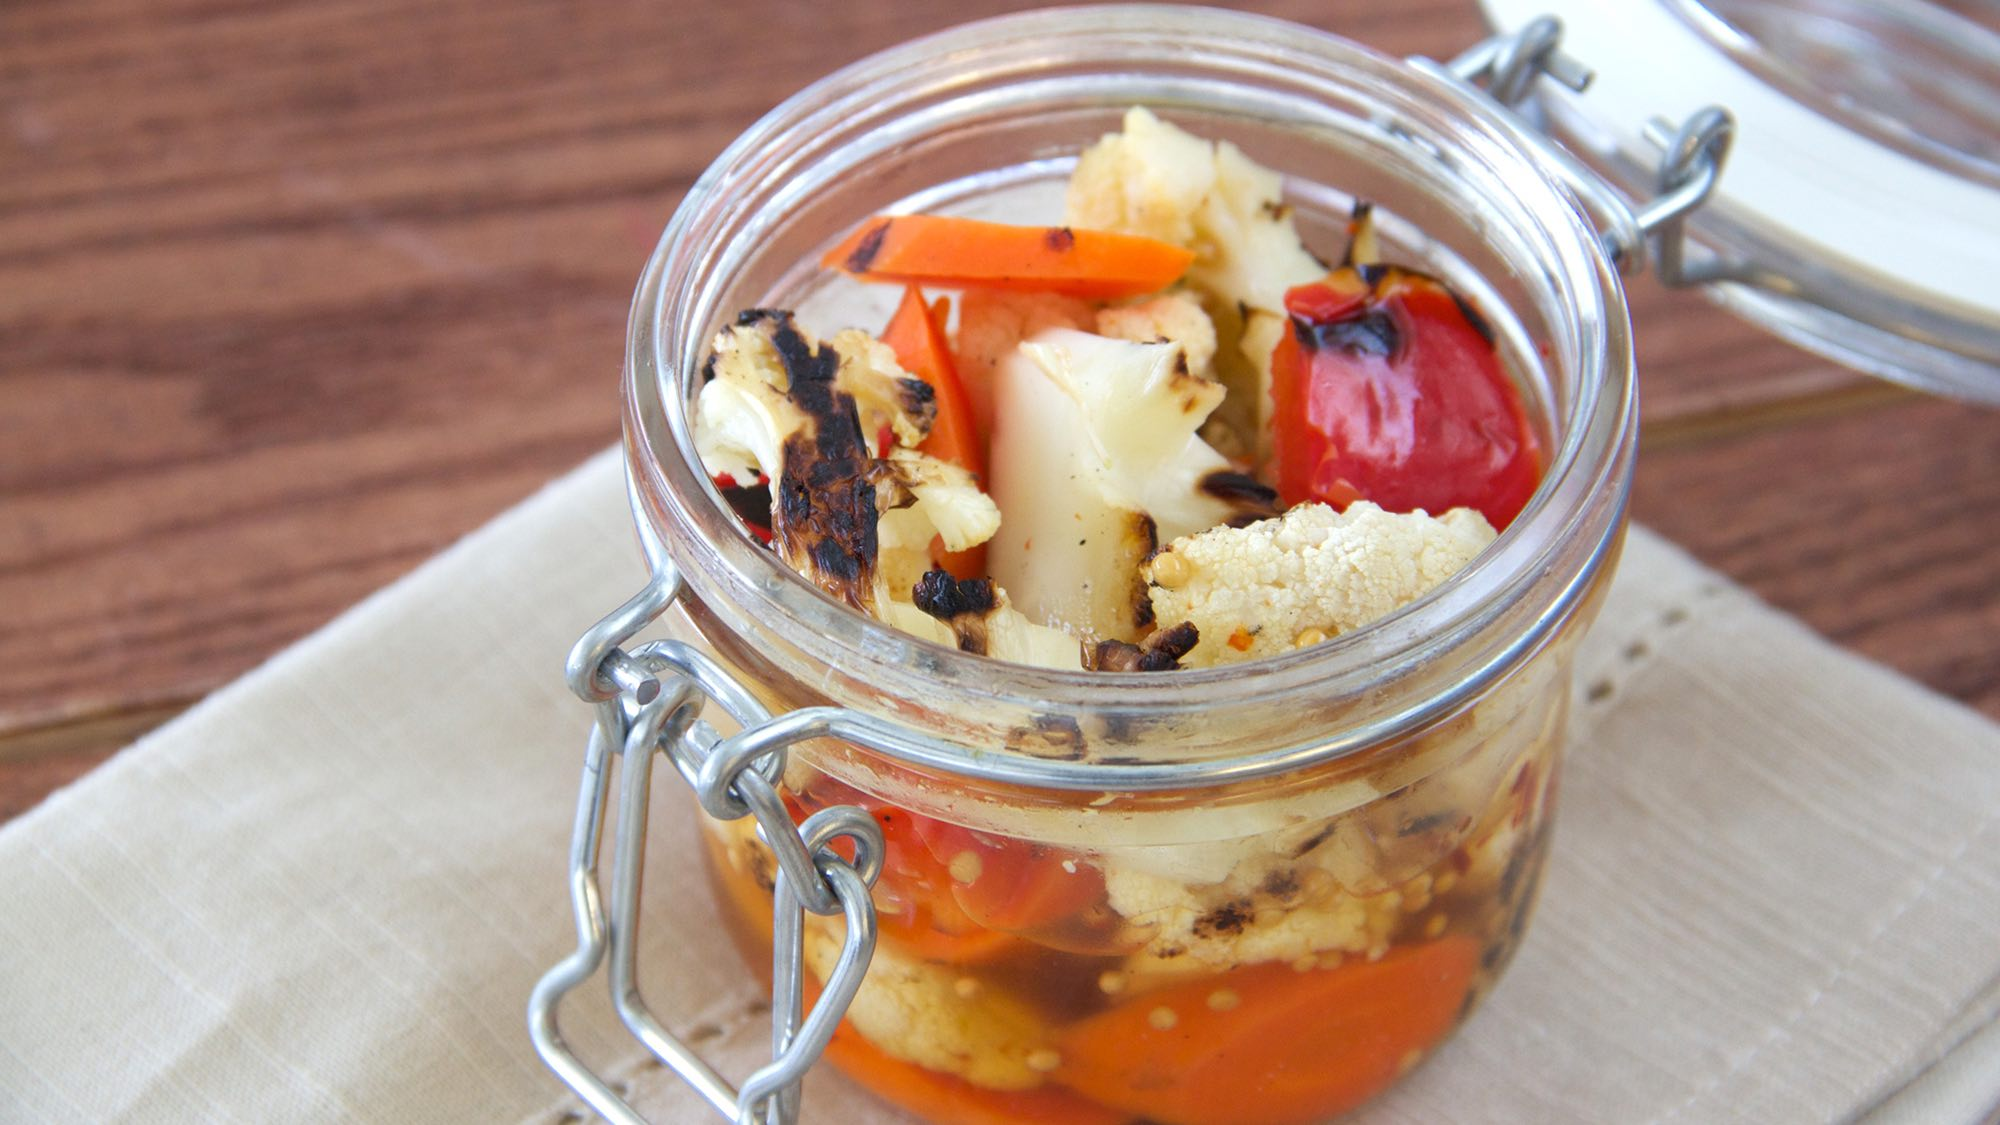 McCormick Quick-pickled Grilled Cauliflower